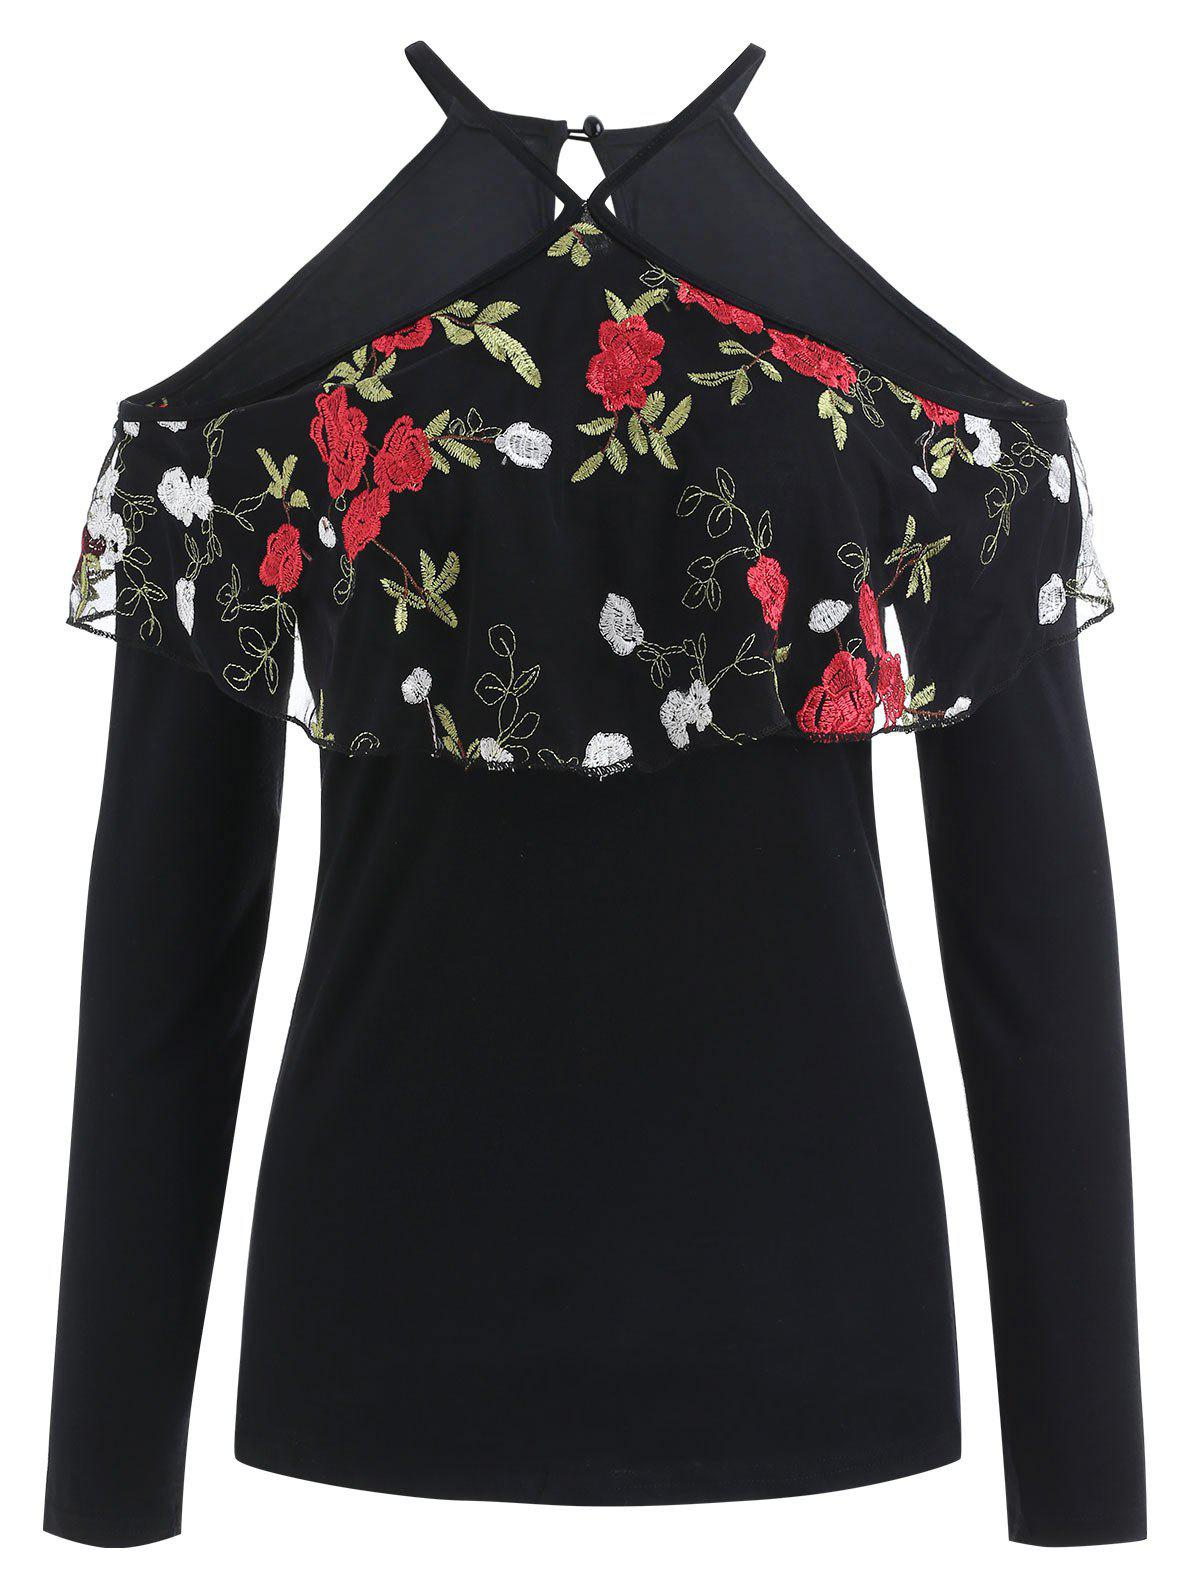 Chic Floral Embroidery Flounce Cold Shoulder Top